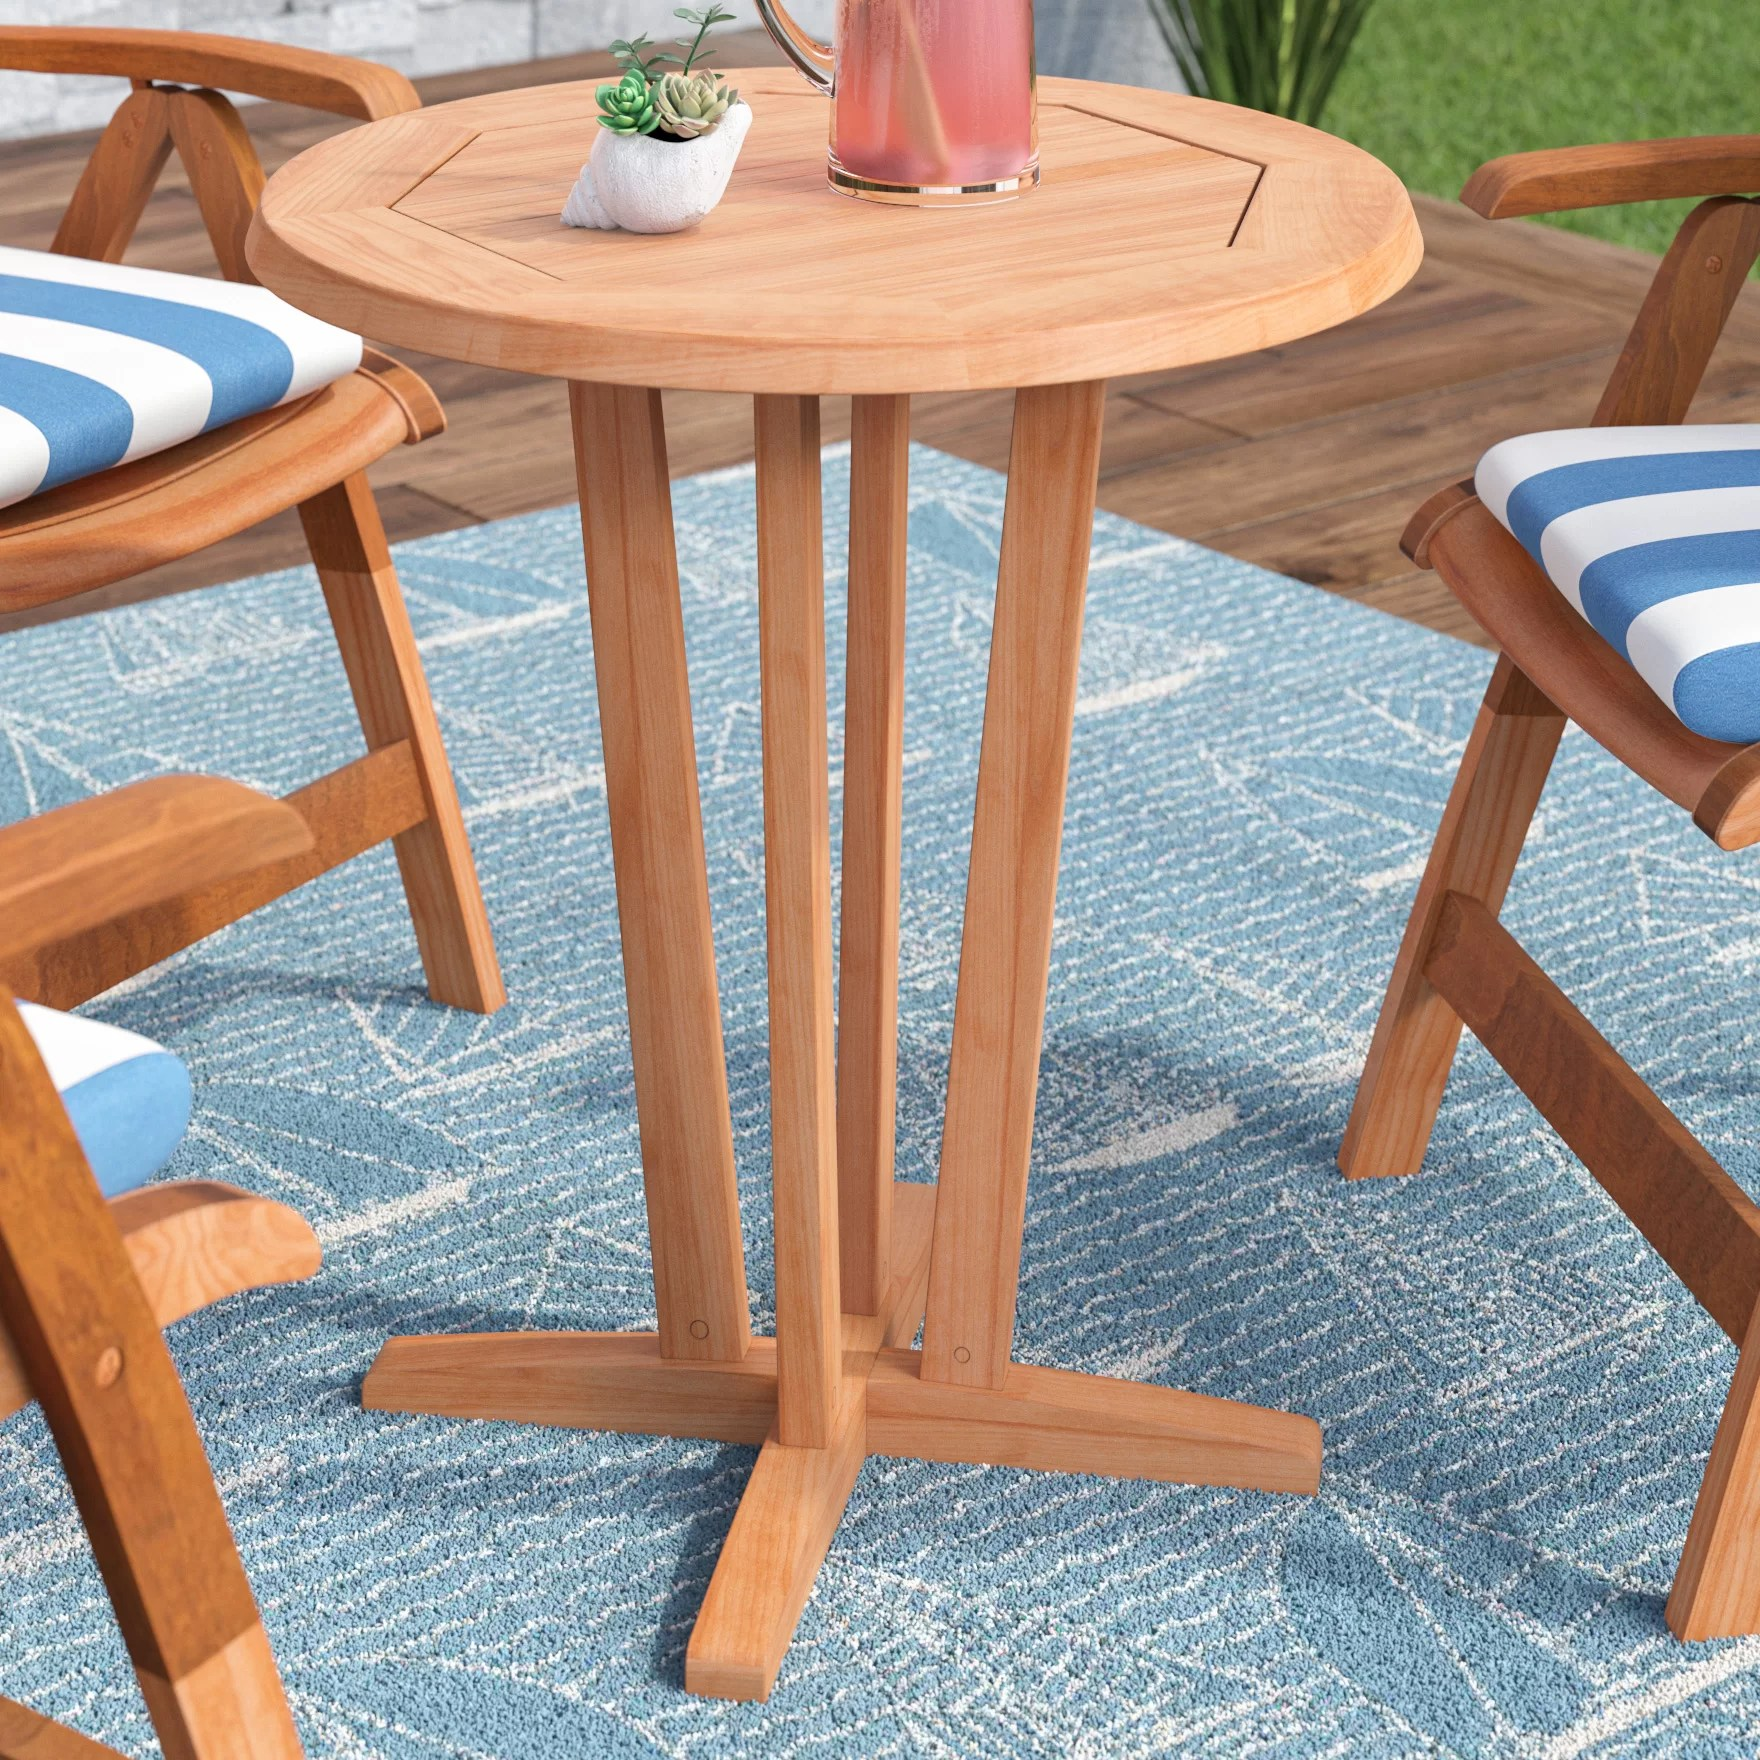 Teak Dining Room Chairs Elsmere Teak Dining Table